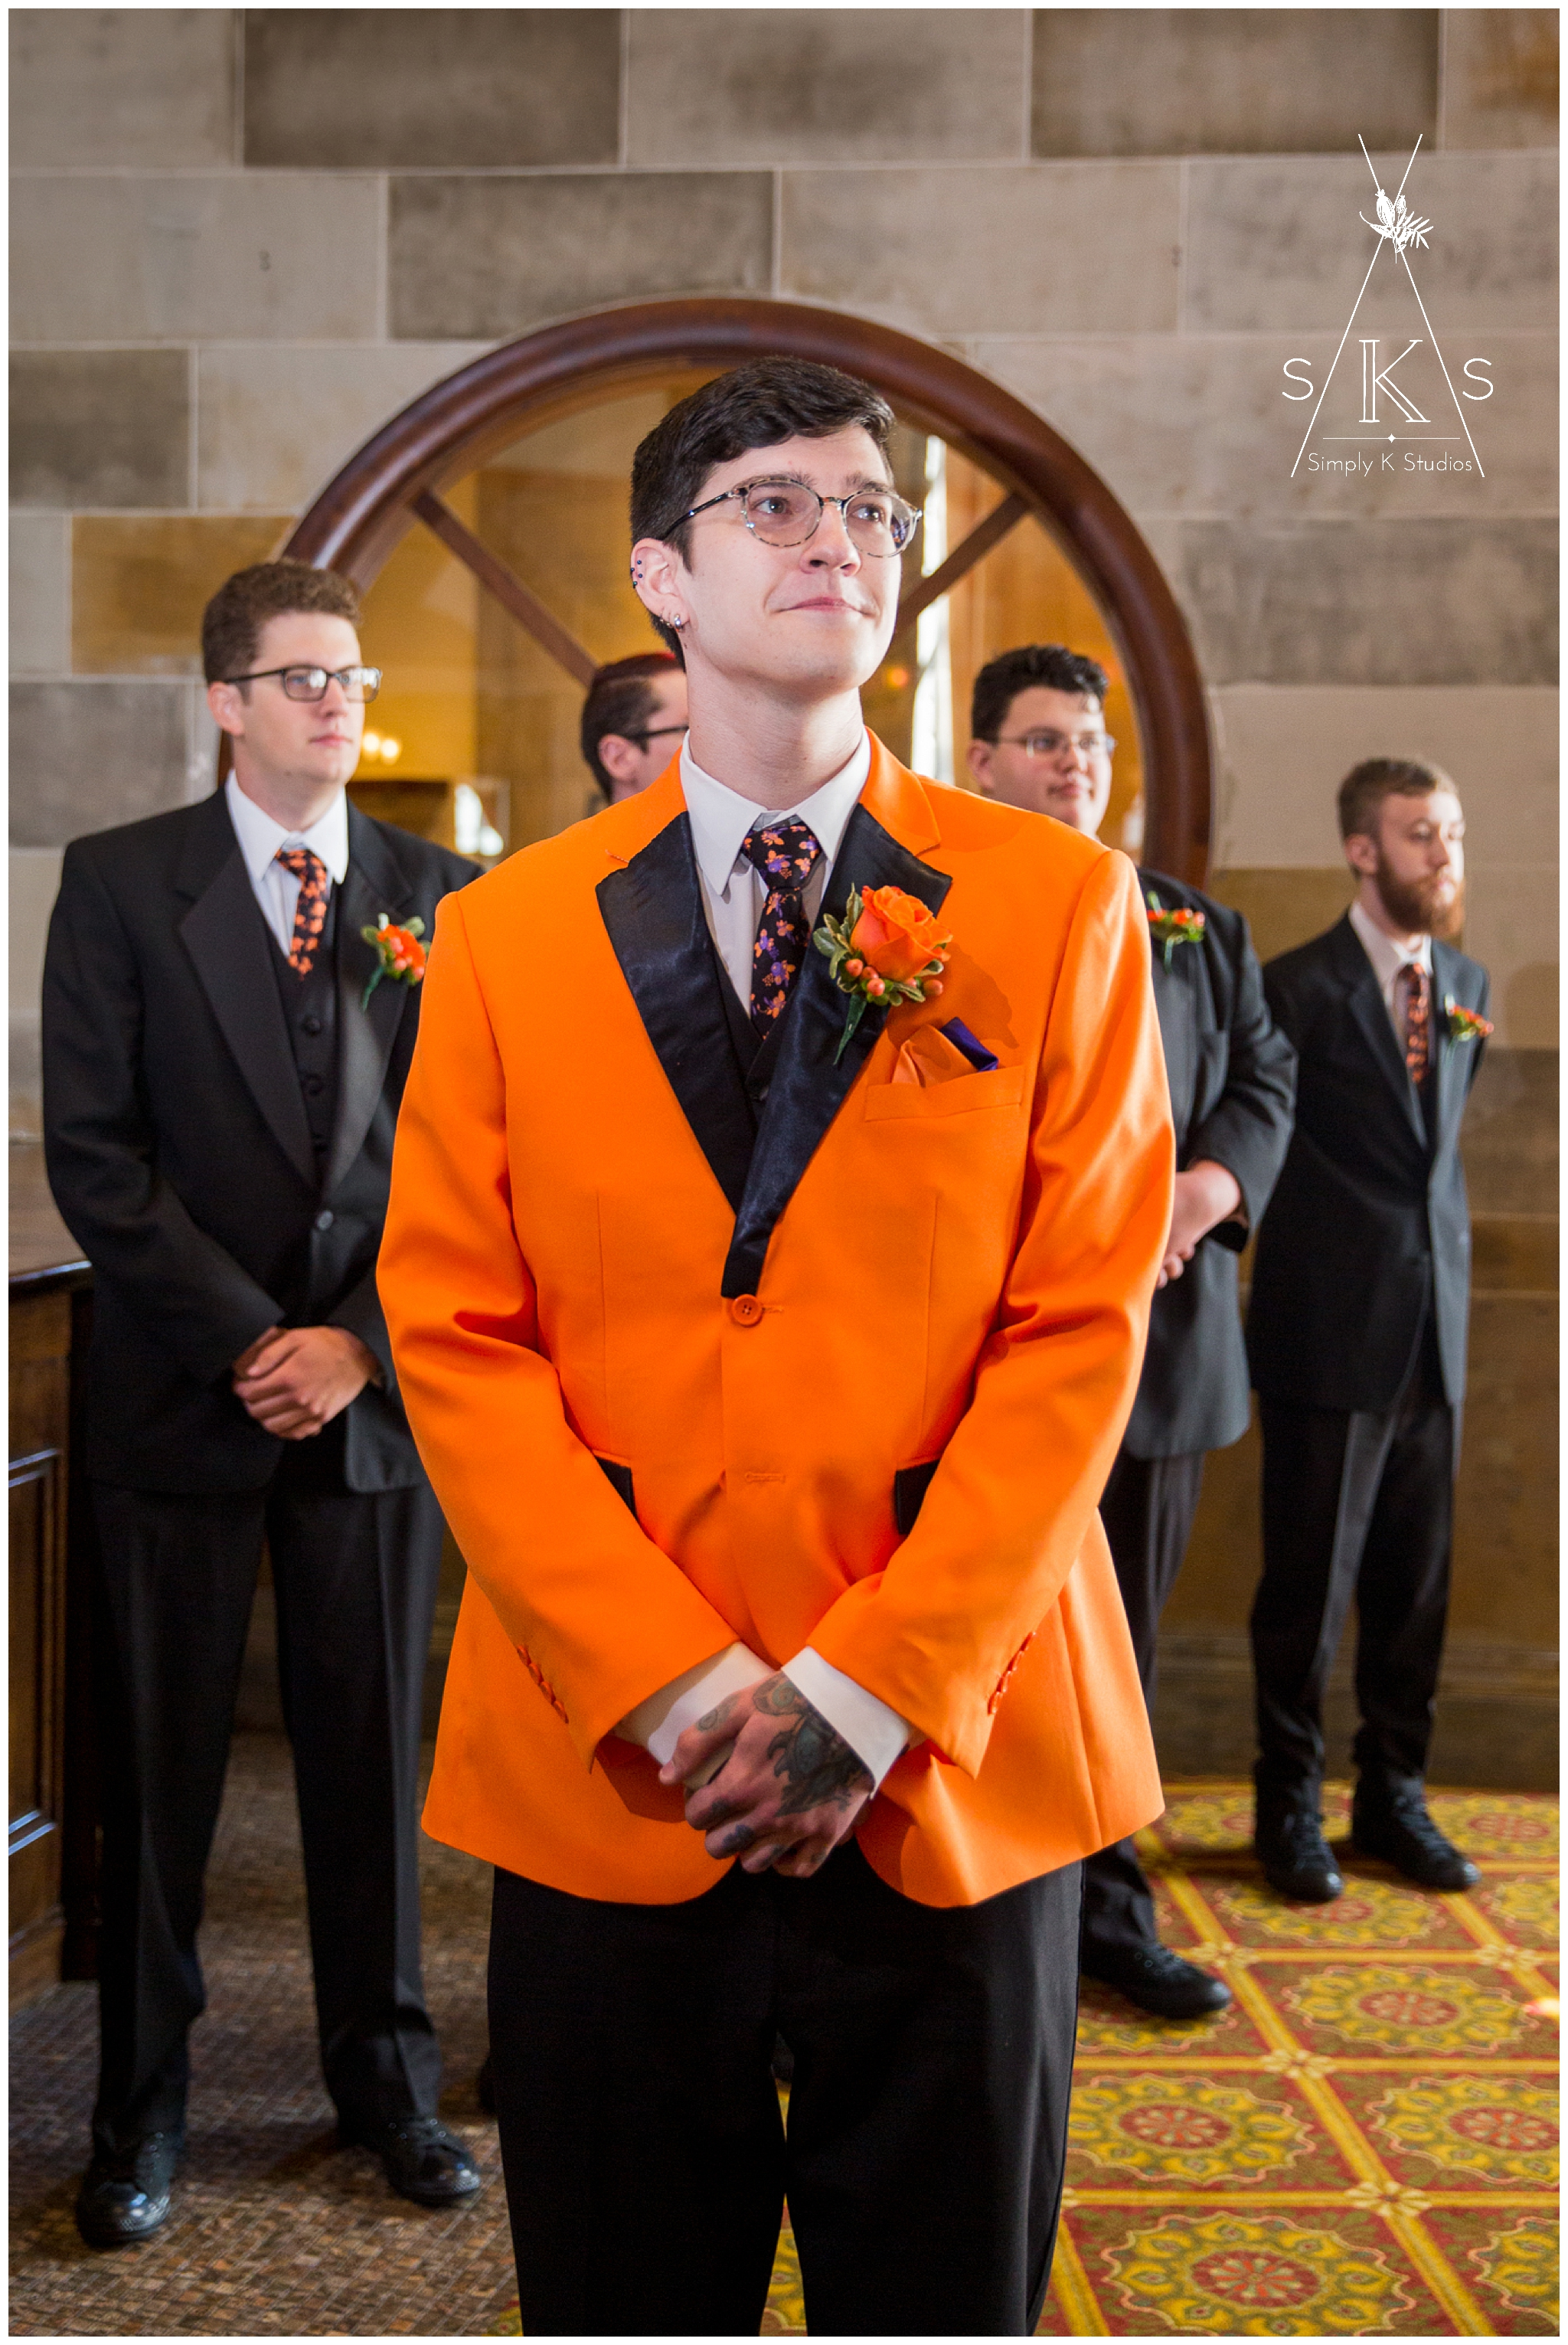 13 Groom's First Look.jpg